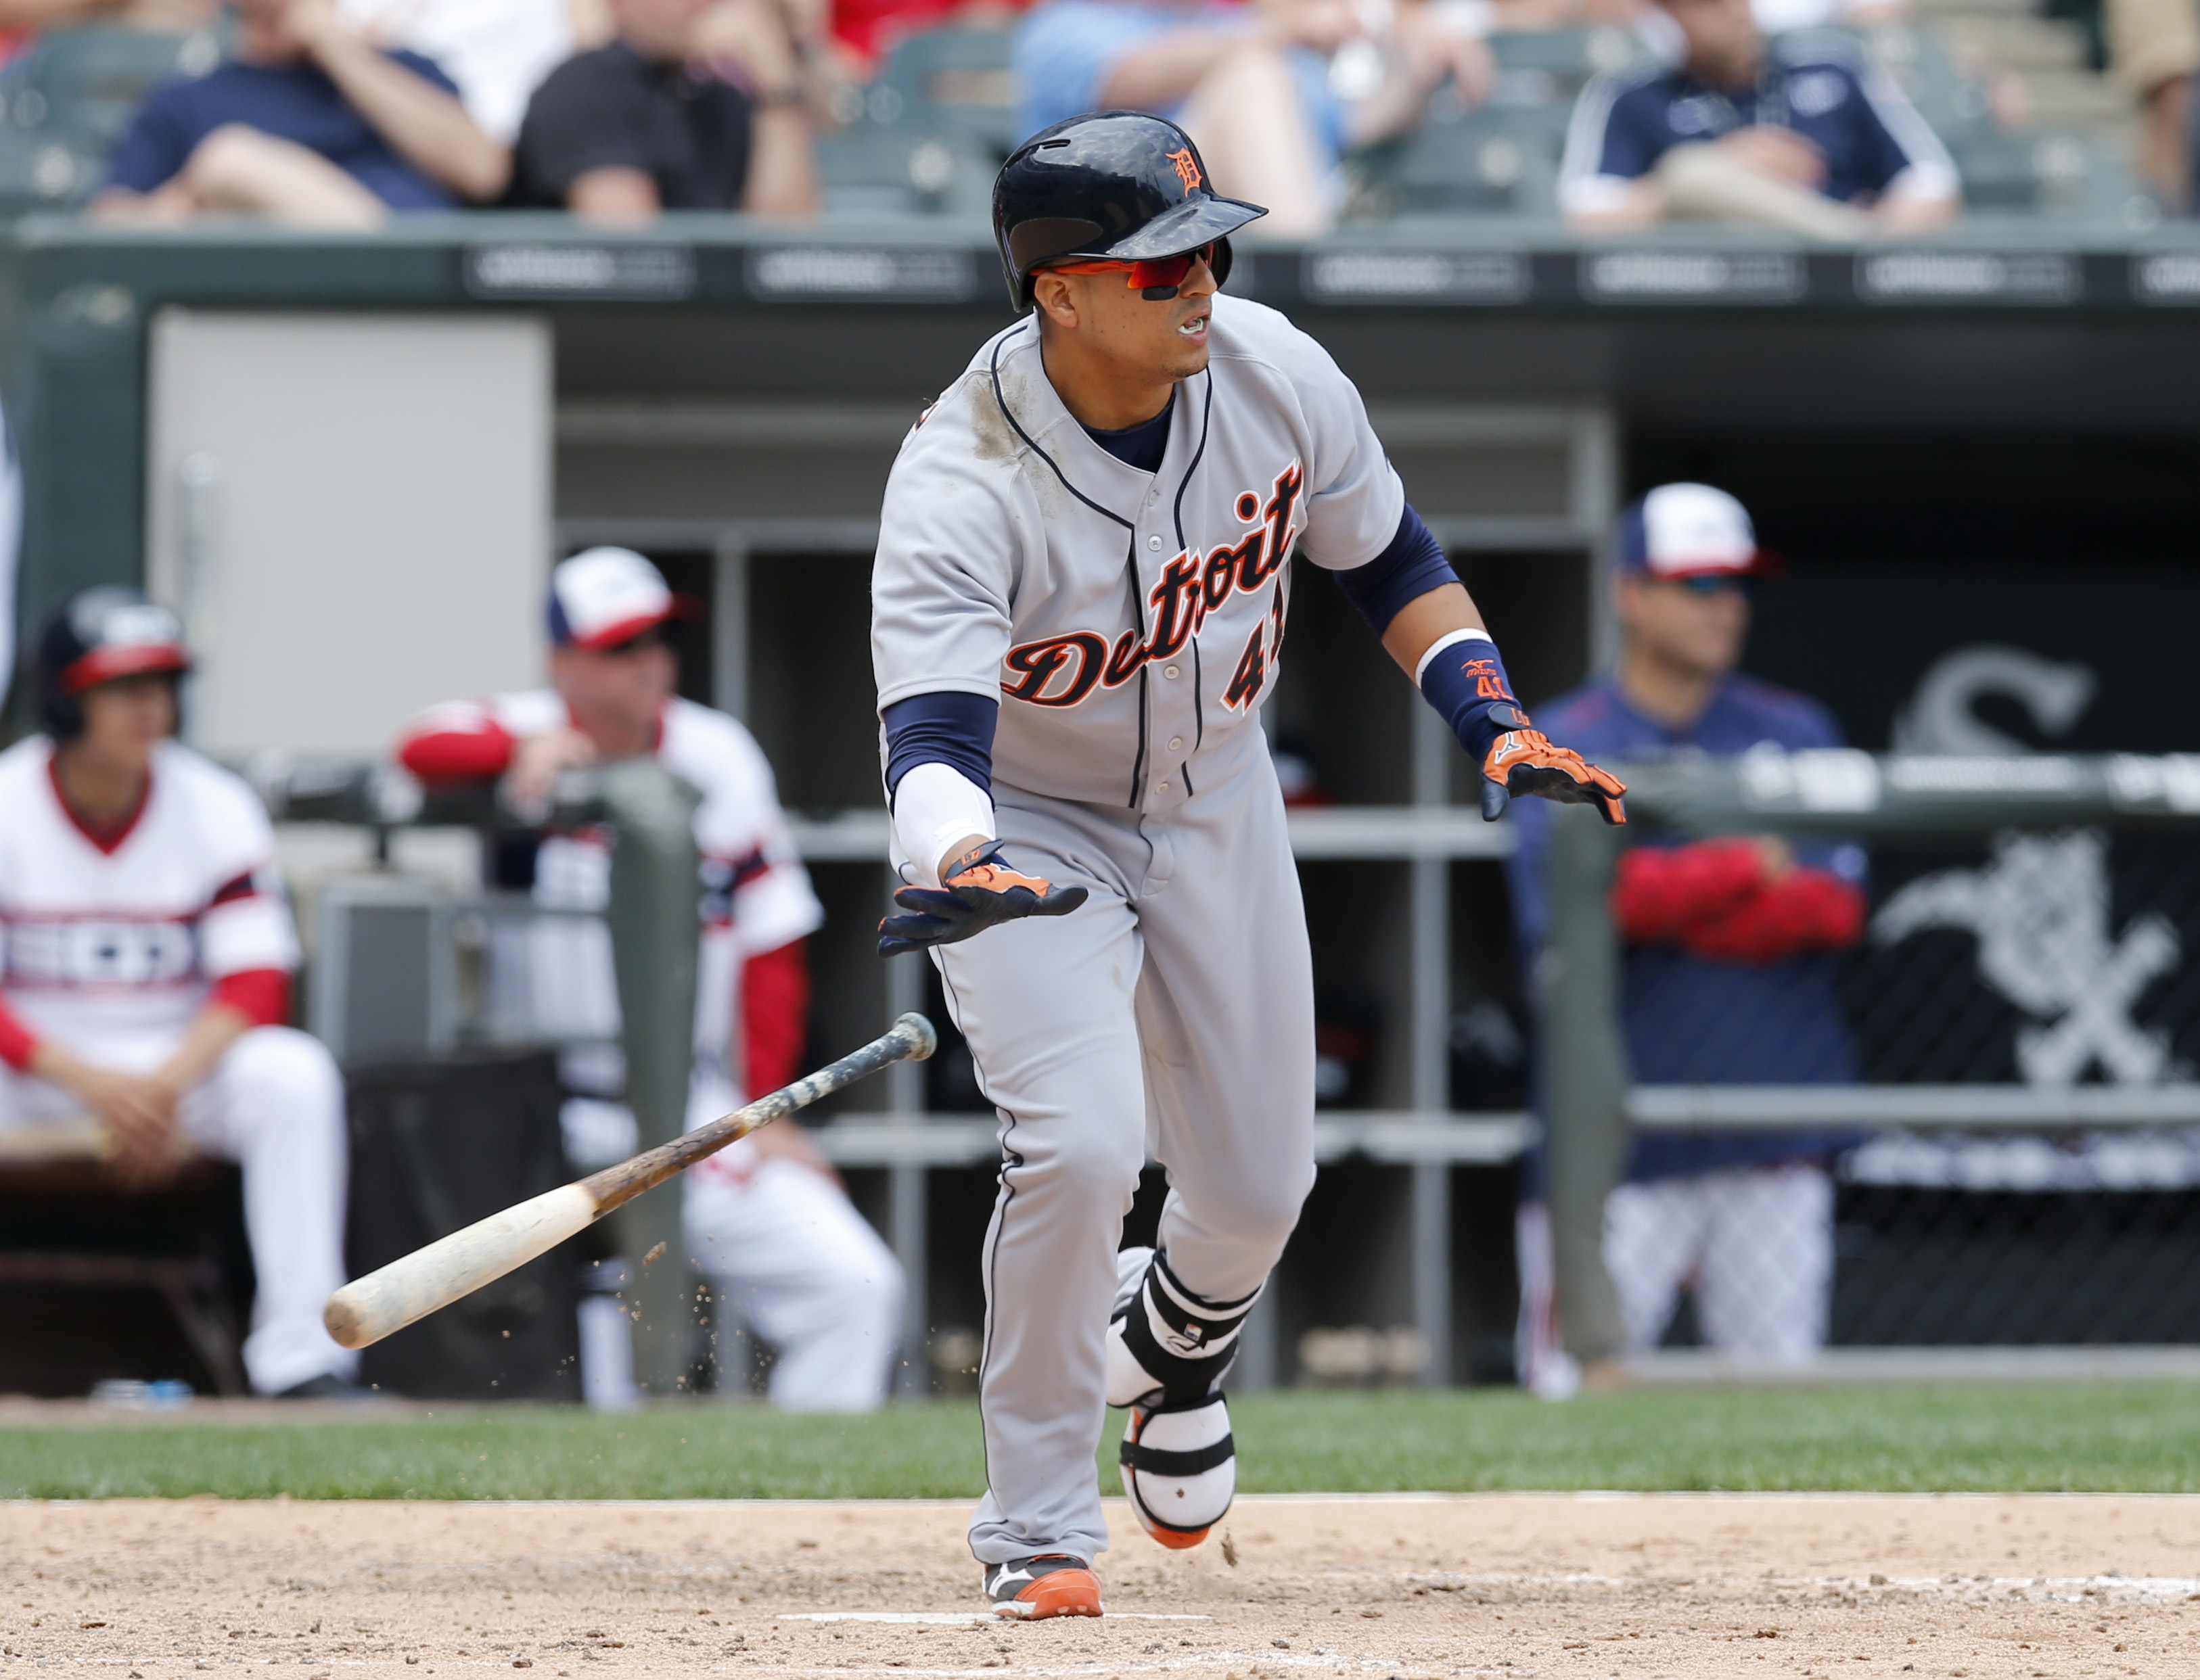 Detroit Tigers' Victor Martinez watches his RBI single off Chicago White Sox relief pitcher Dan Jennings, scoring Ian Kinsler, during the eighth inning of a baseball game Thursday, May 7, 2015, in Chicago. (AP Photo/Charles Rex Arbogast)